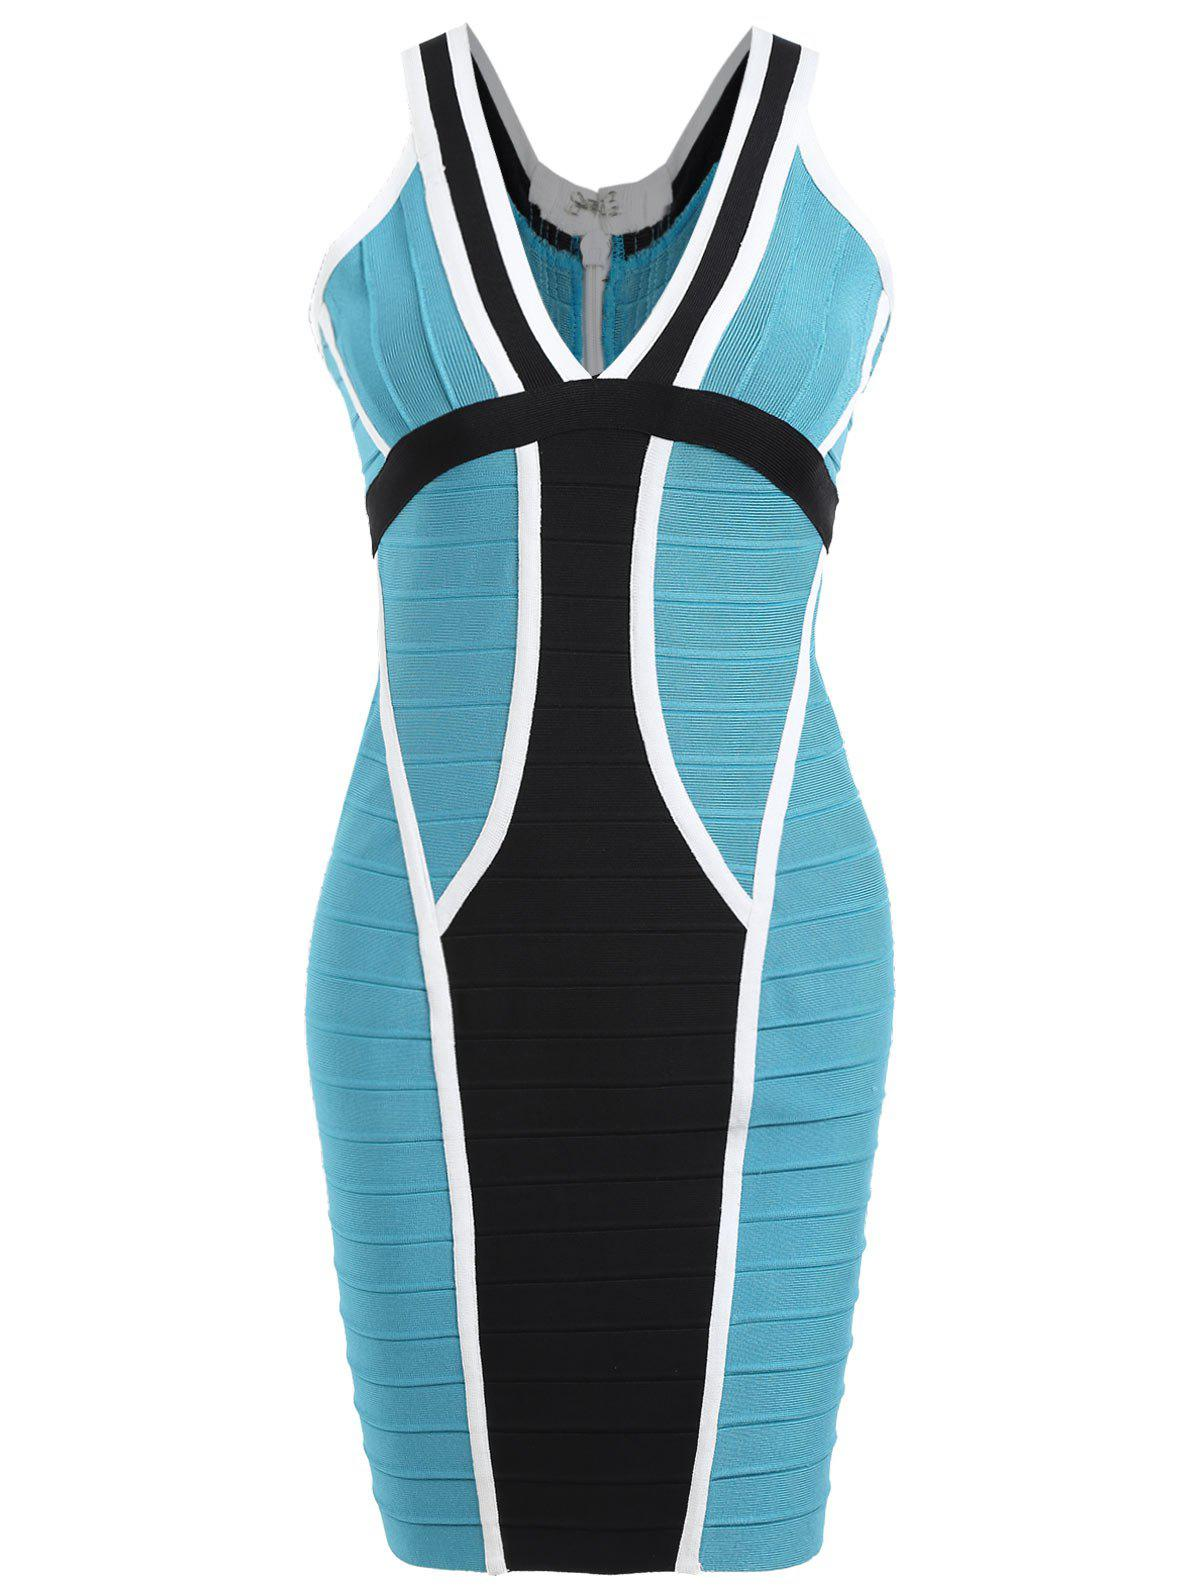 V Neck Color Block Bandage Dress - BLUE S